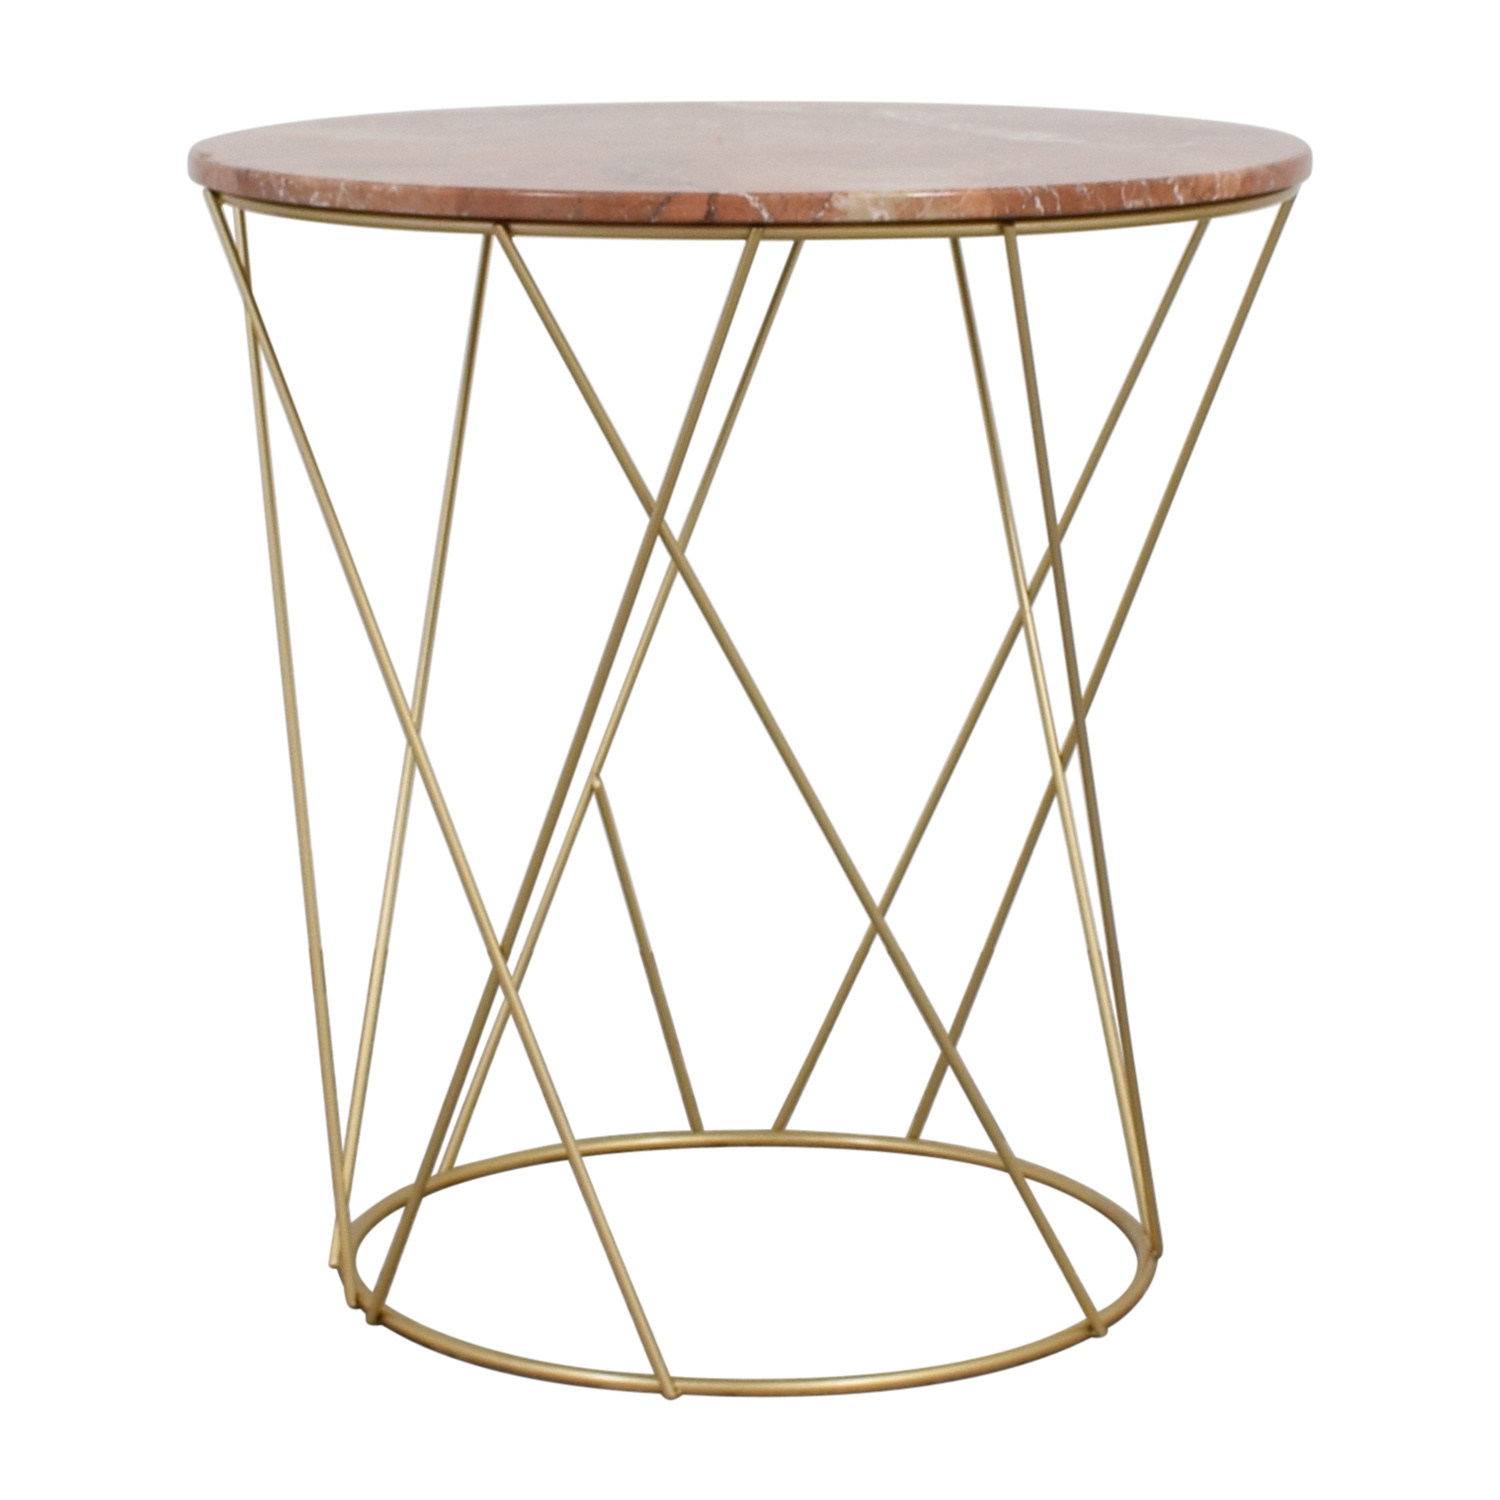 off lotus pink gold round marble table tables accent corner for bedroom tall metal end outdoor protector glass dining and chairs nautical lighting long narrow room decorative